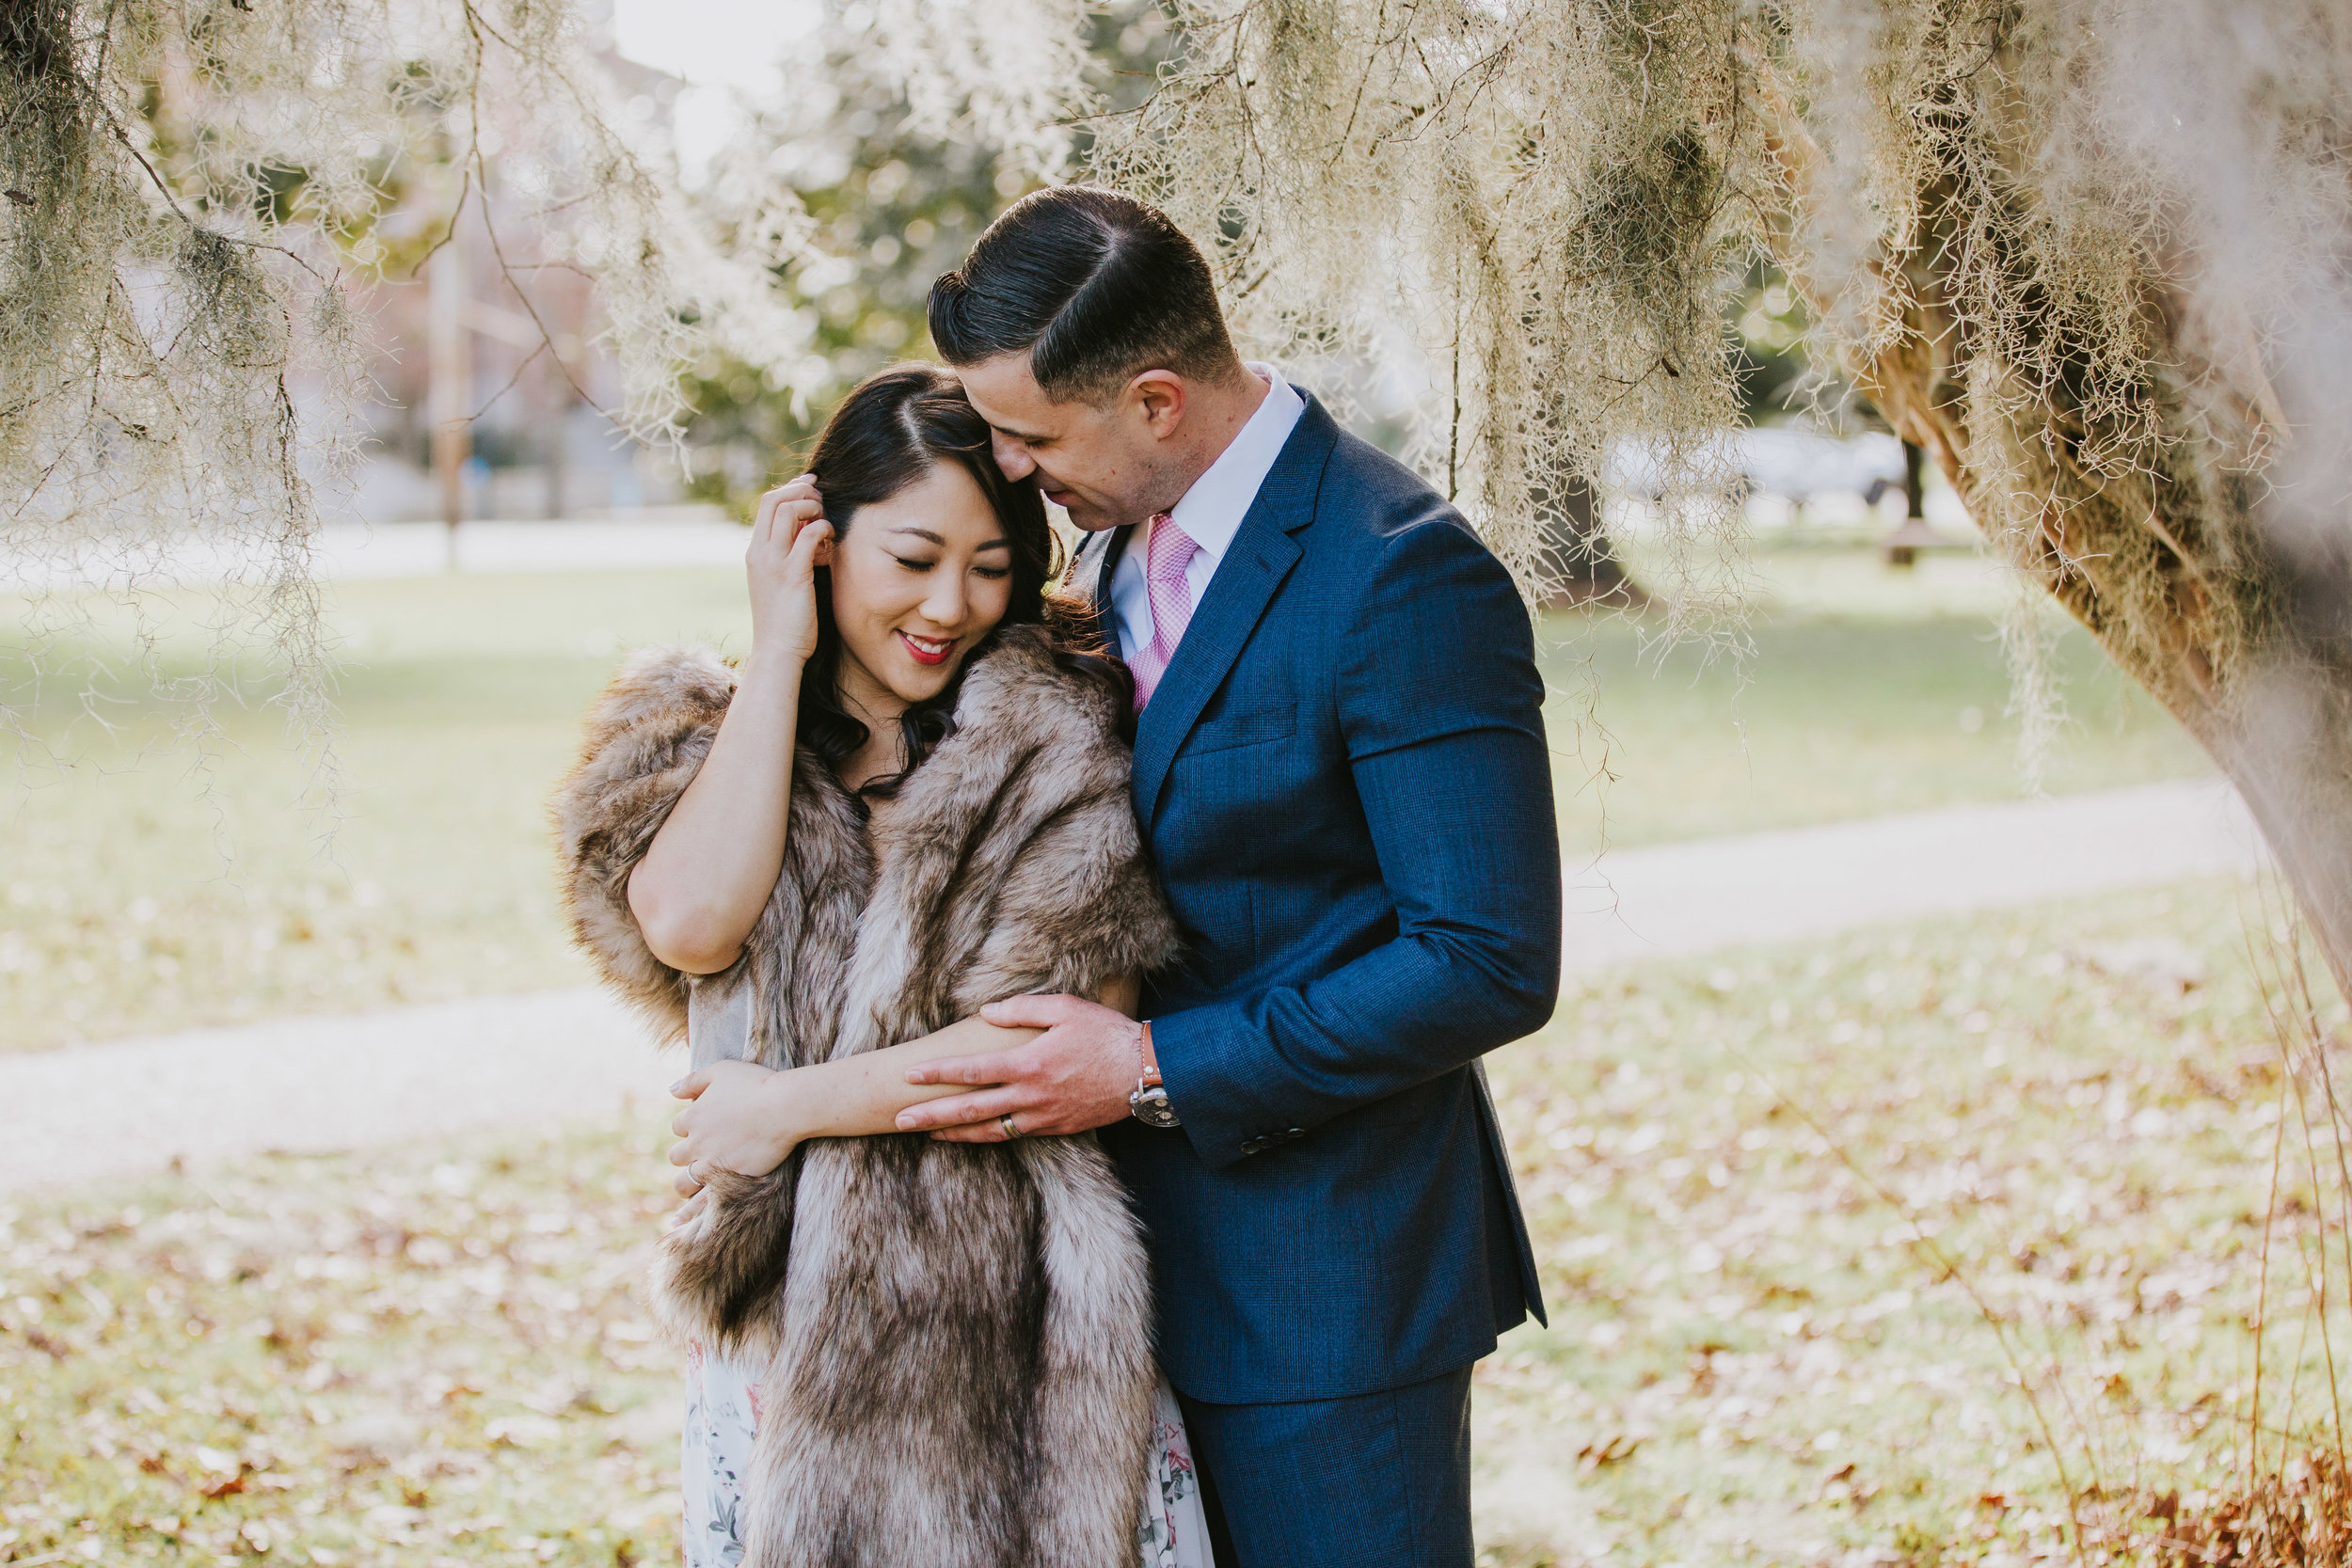 City Park Elopement New Orleans Wedding Photographer Ashley Biltz Photography22.jpg